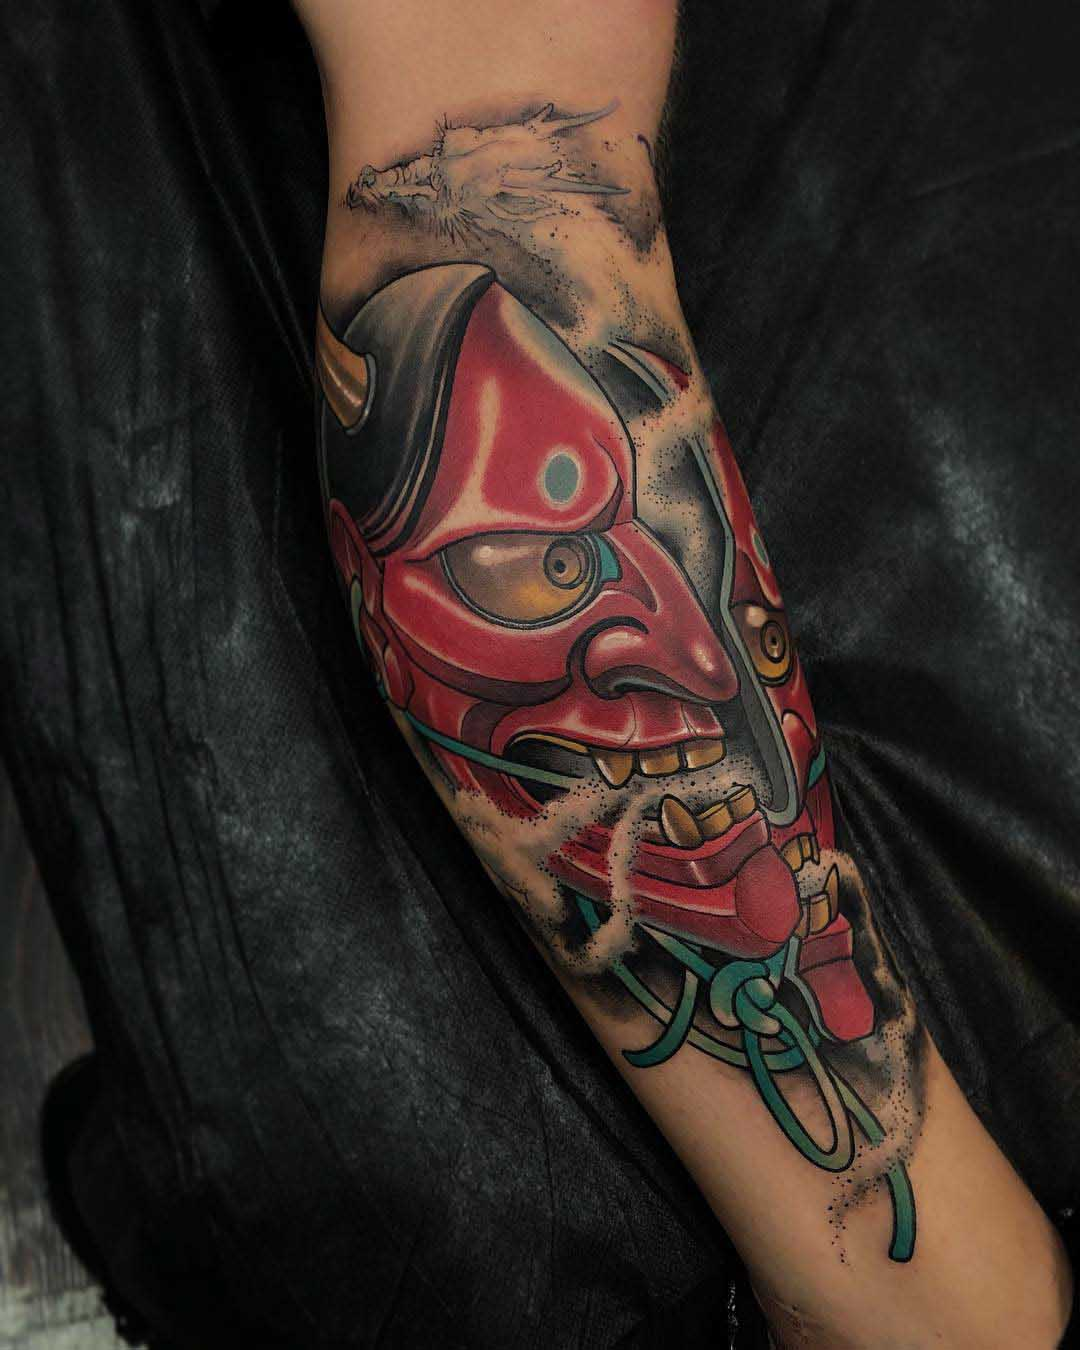 hannya mask tattoo on arm